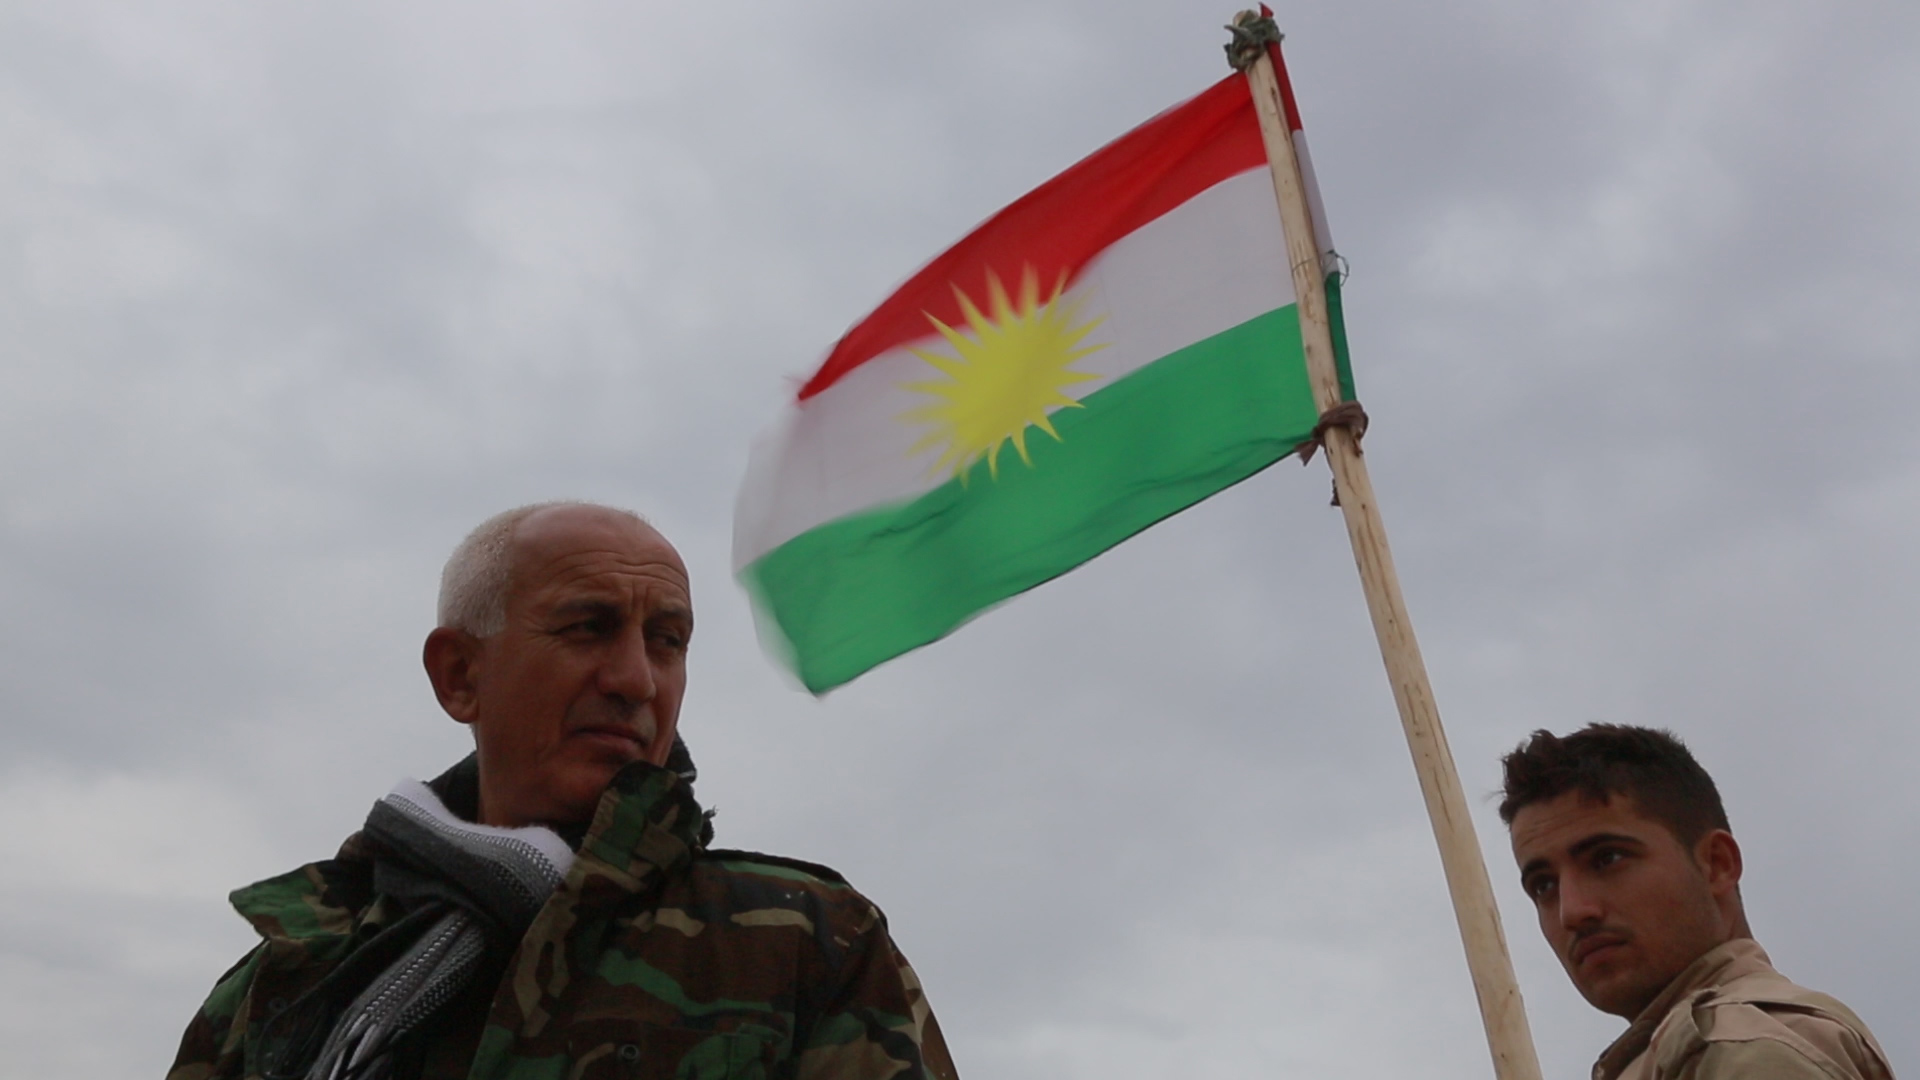 peshmerga and flag